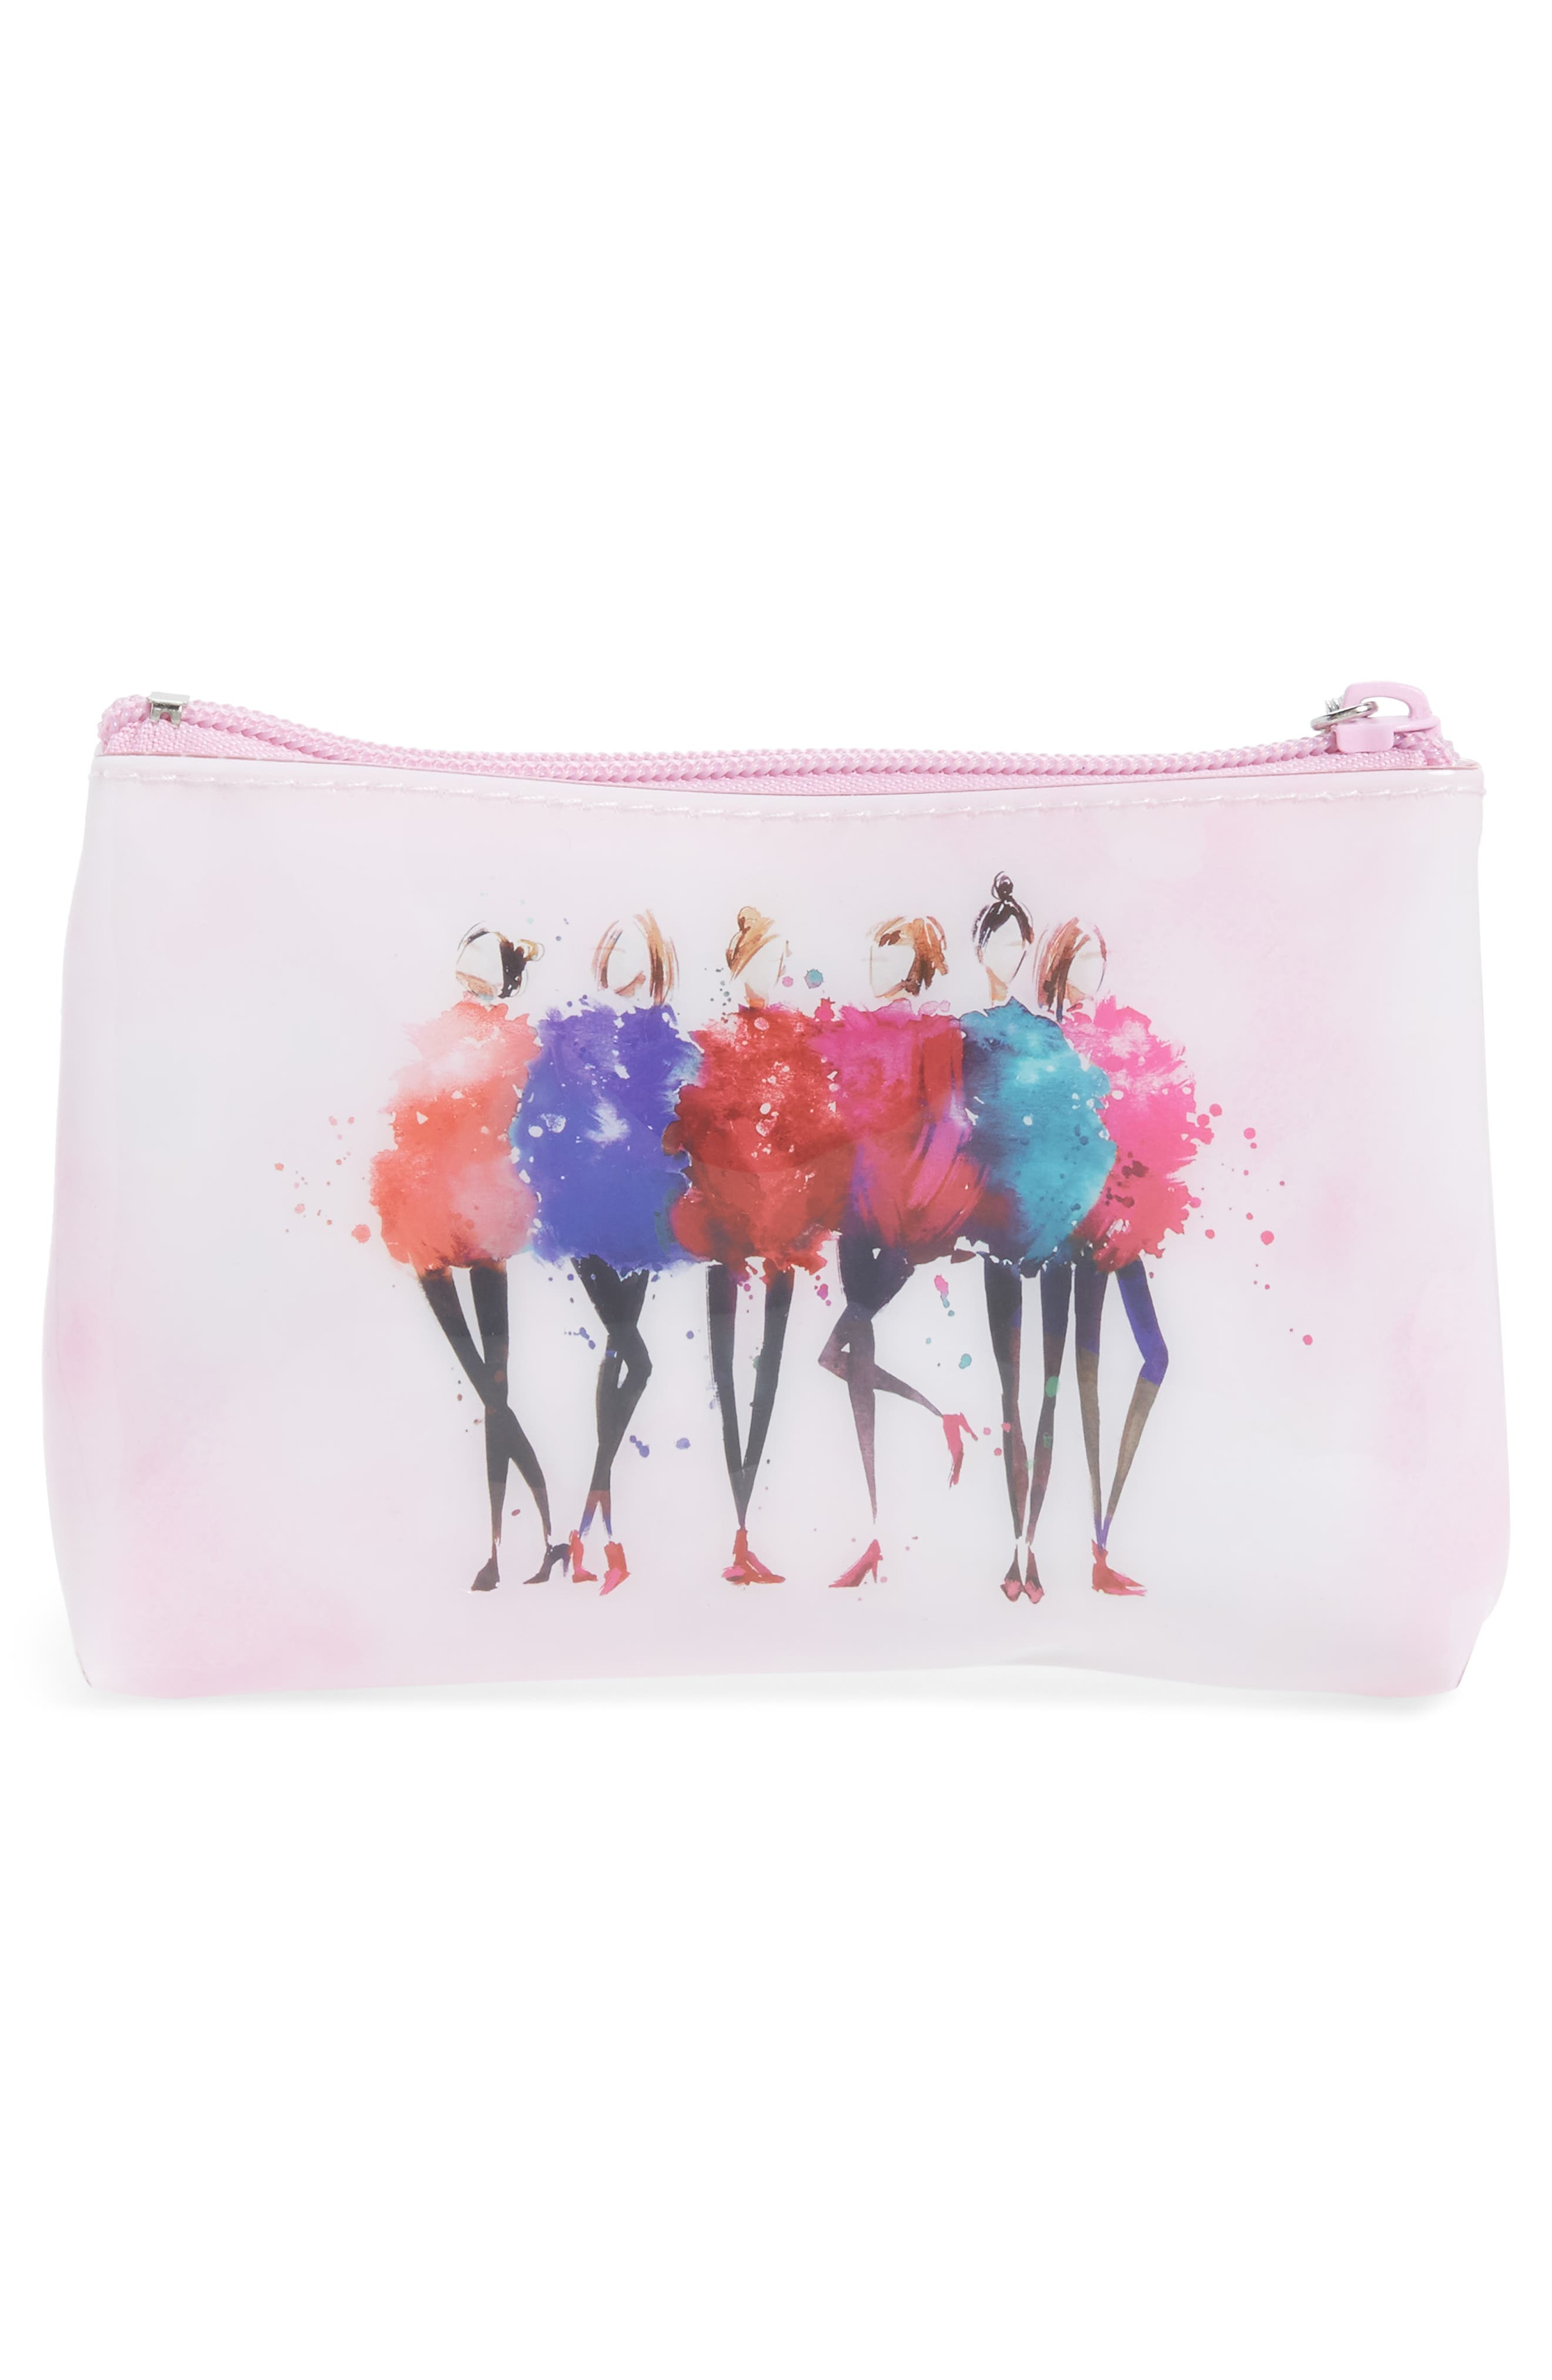 Watercolor Women Cosmetics Pouch,                             Alternate thumbnail 2, color,                             Pink